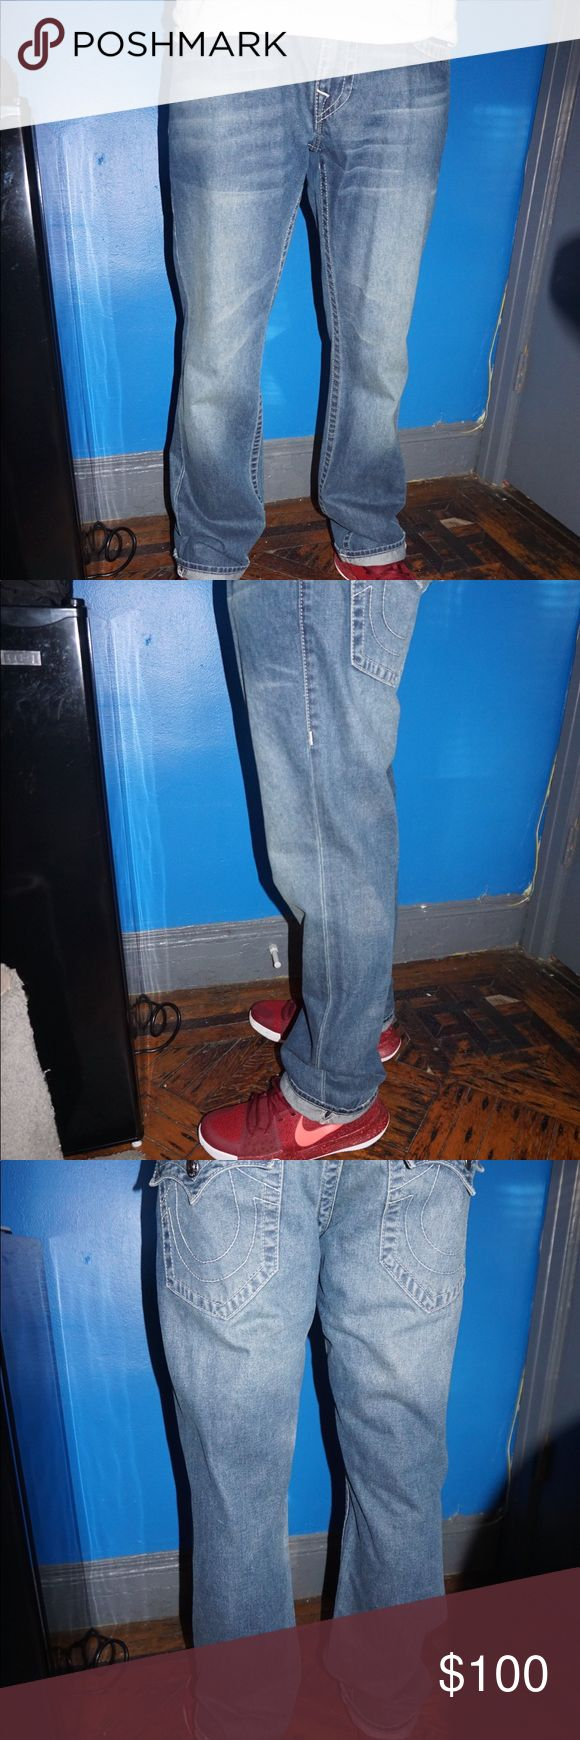 True religion jeans for sale More jeans coming soon True Religion Jeans Slim